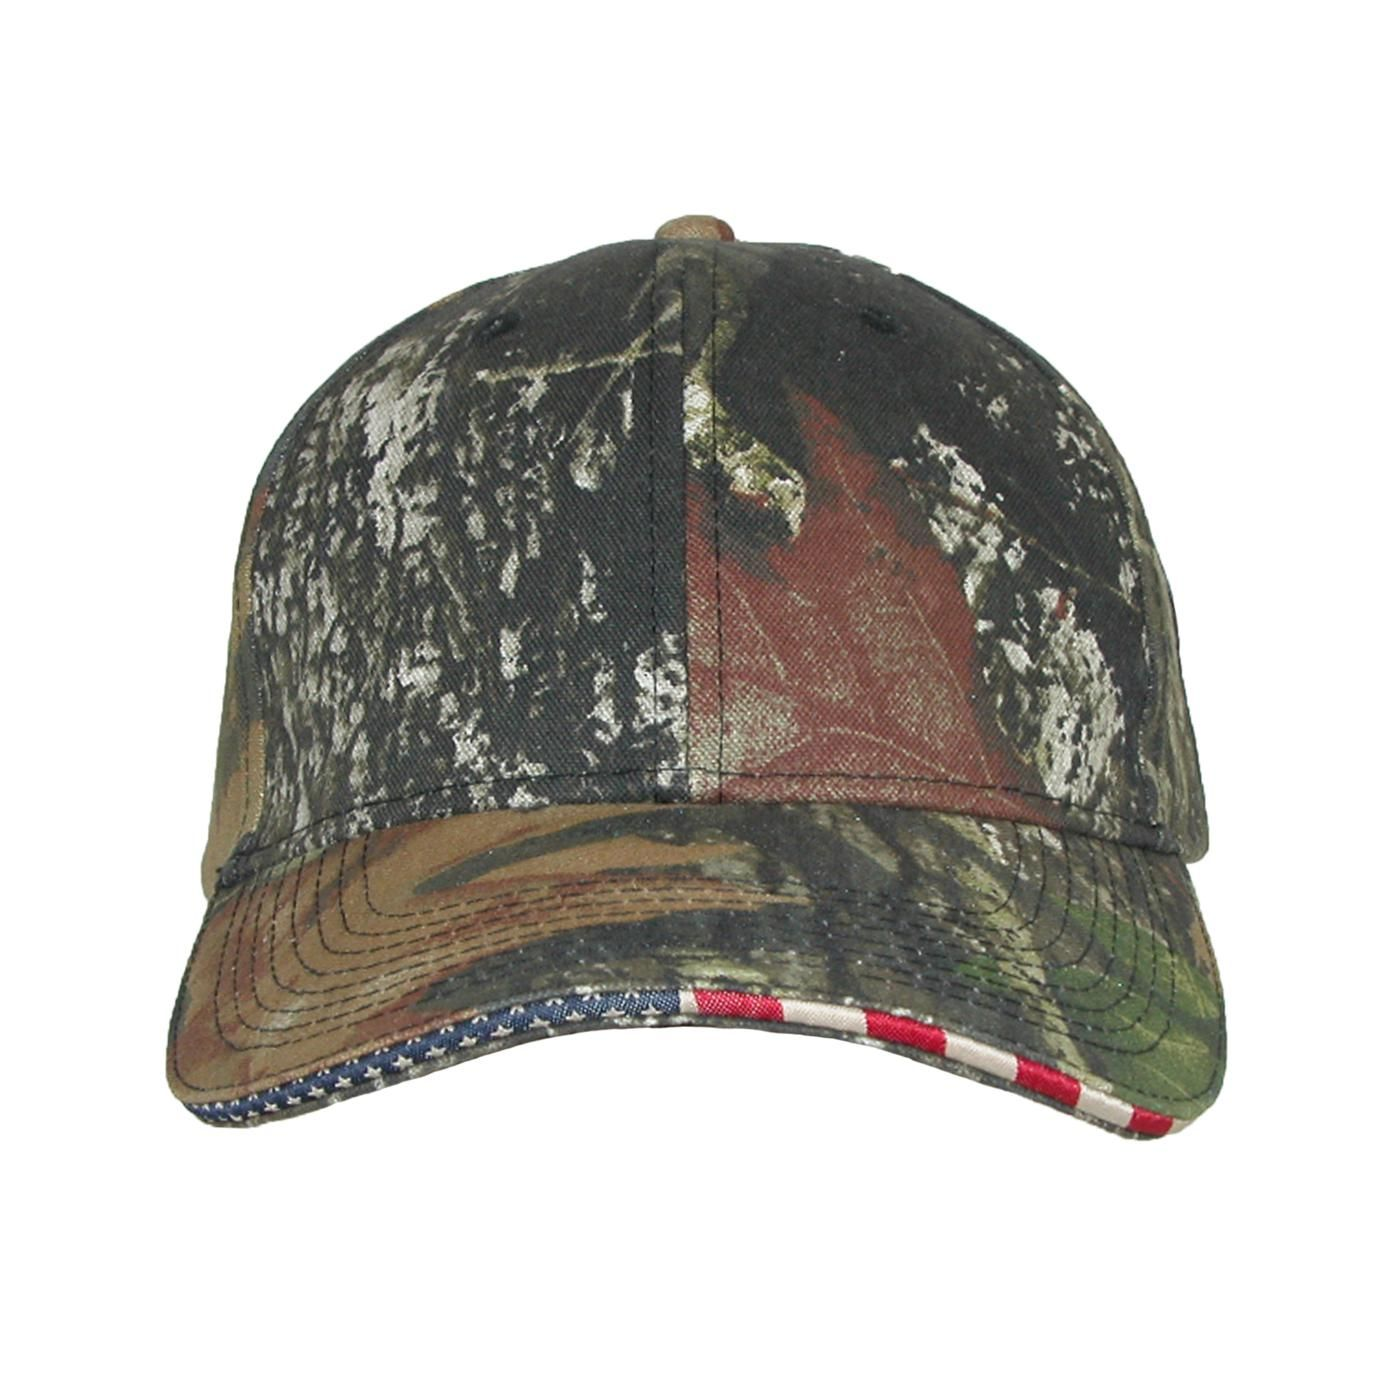 CTM® Mossy Oak Break-Up with American Flag Trim. Fully adjustable up with  Velcro closure. 1 size fits most 89eb65e0baa7